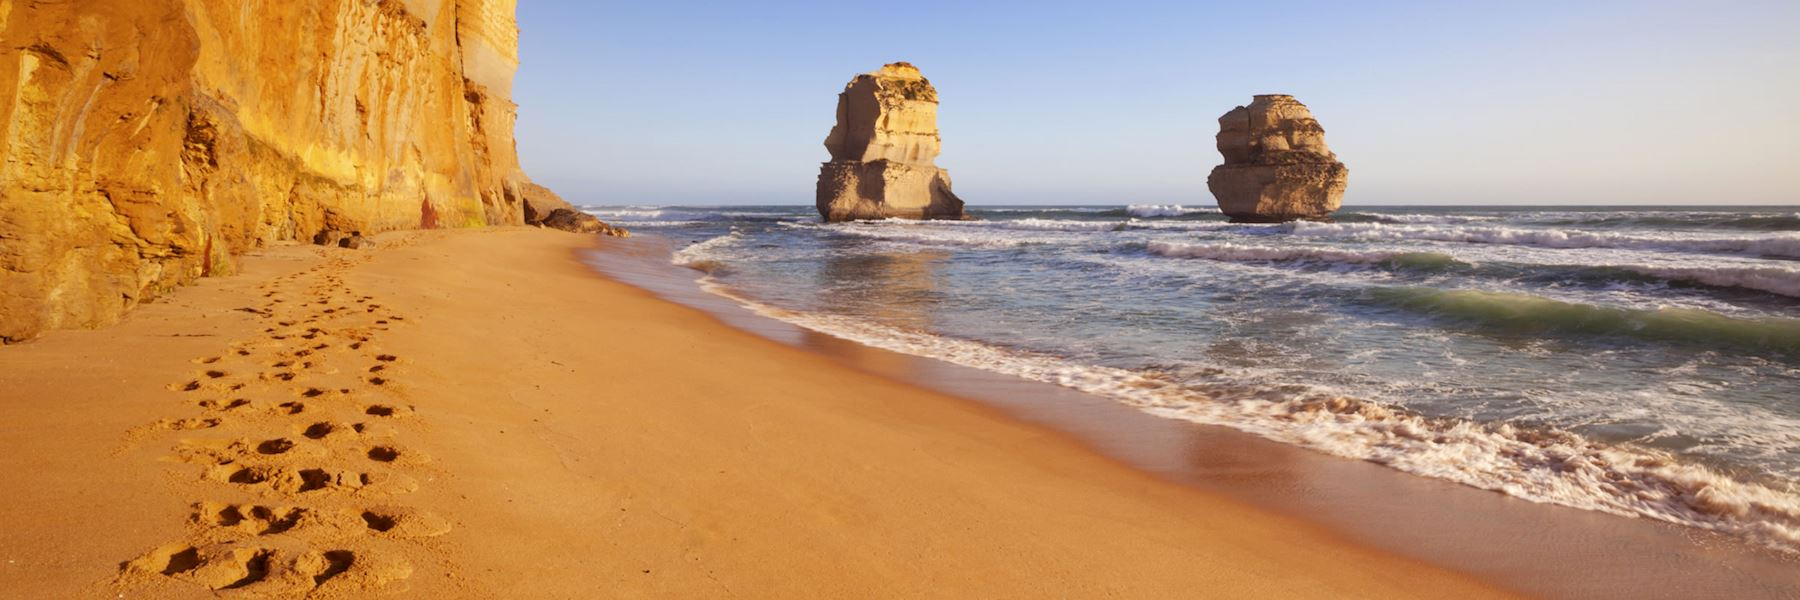 Visit the Great Ocean Road, Australia